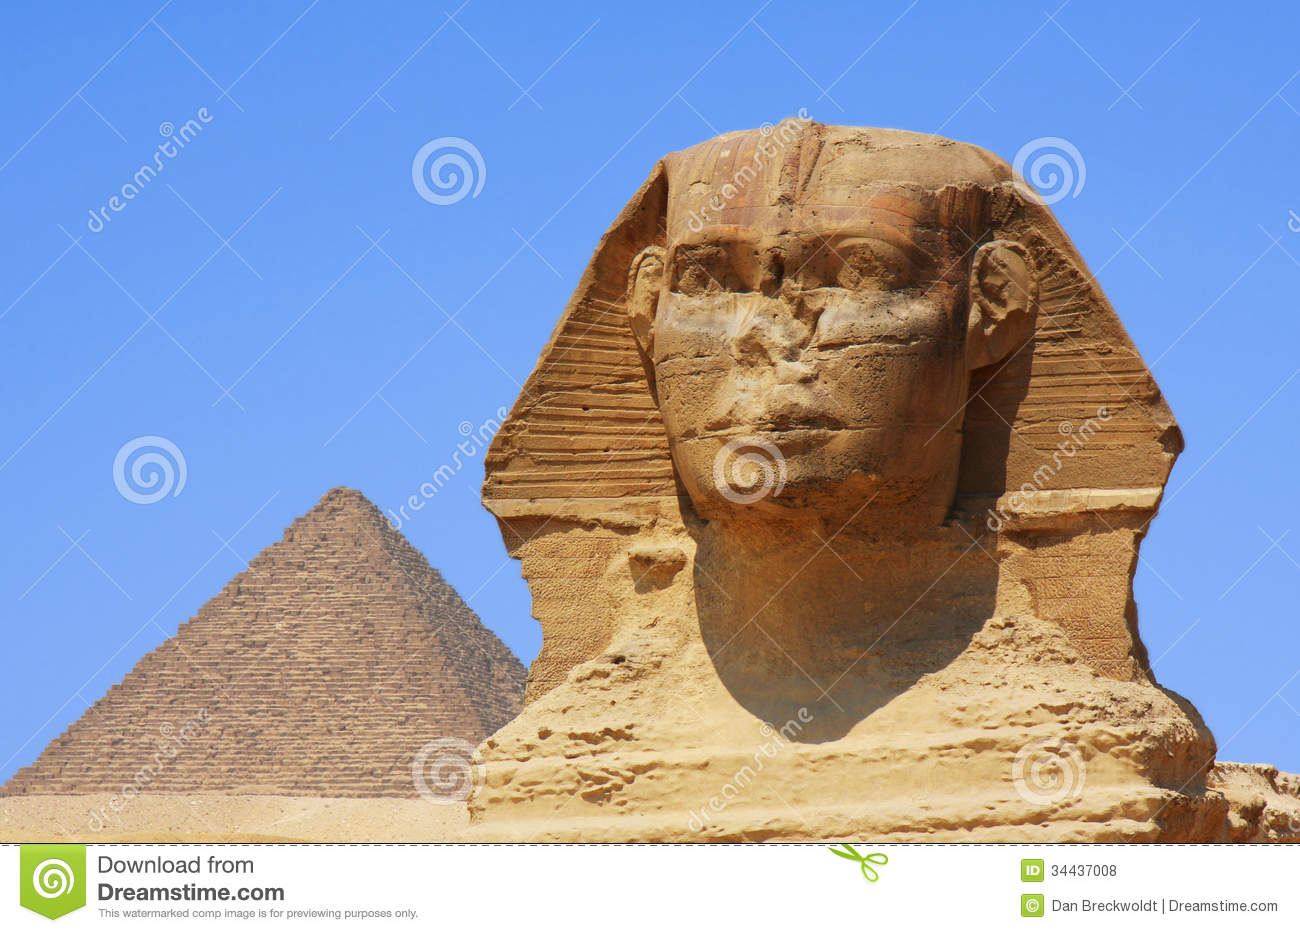 The Sphinx And Pyramid In Egypt Royalty Free Stock Photos - Image ...